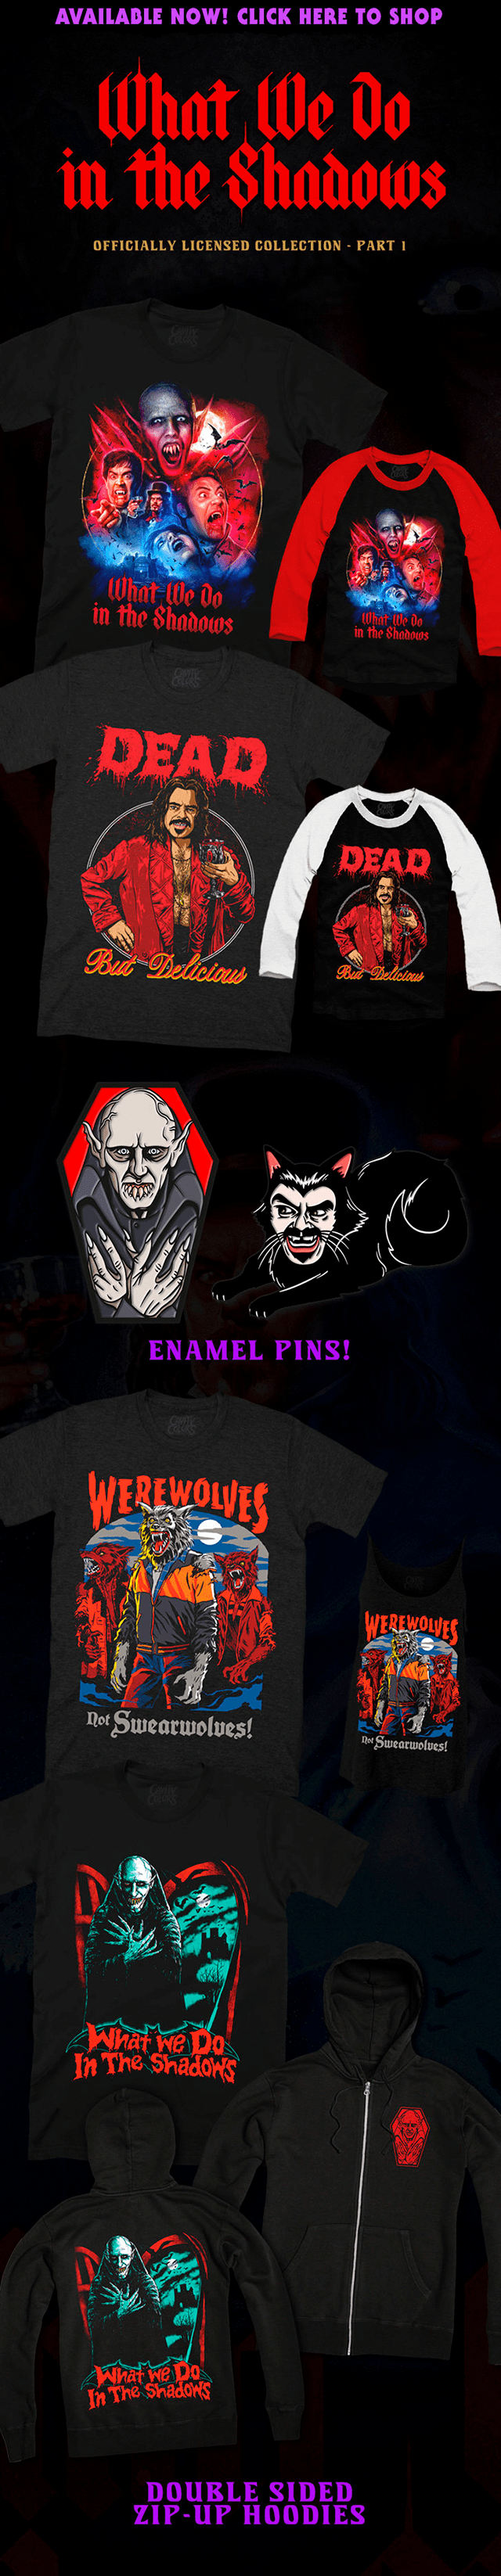 WHAT WE DO IN THE SHADOWS Collection: Part 1 from Cavity Colors 🧛🏻